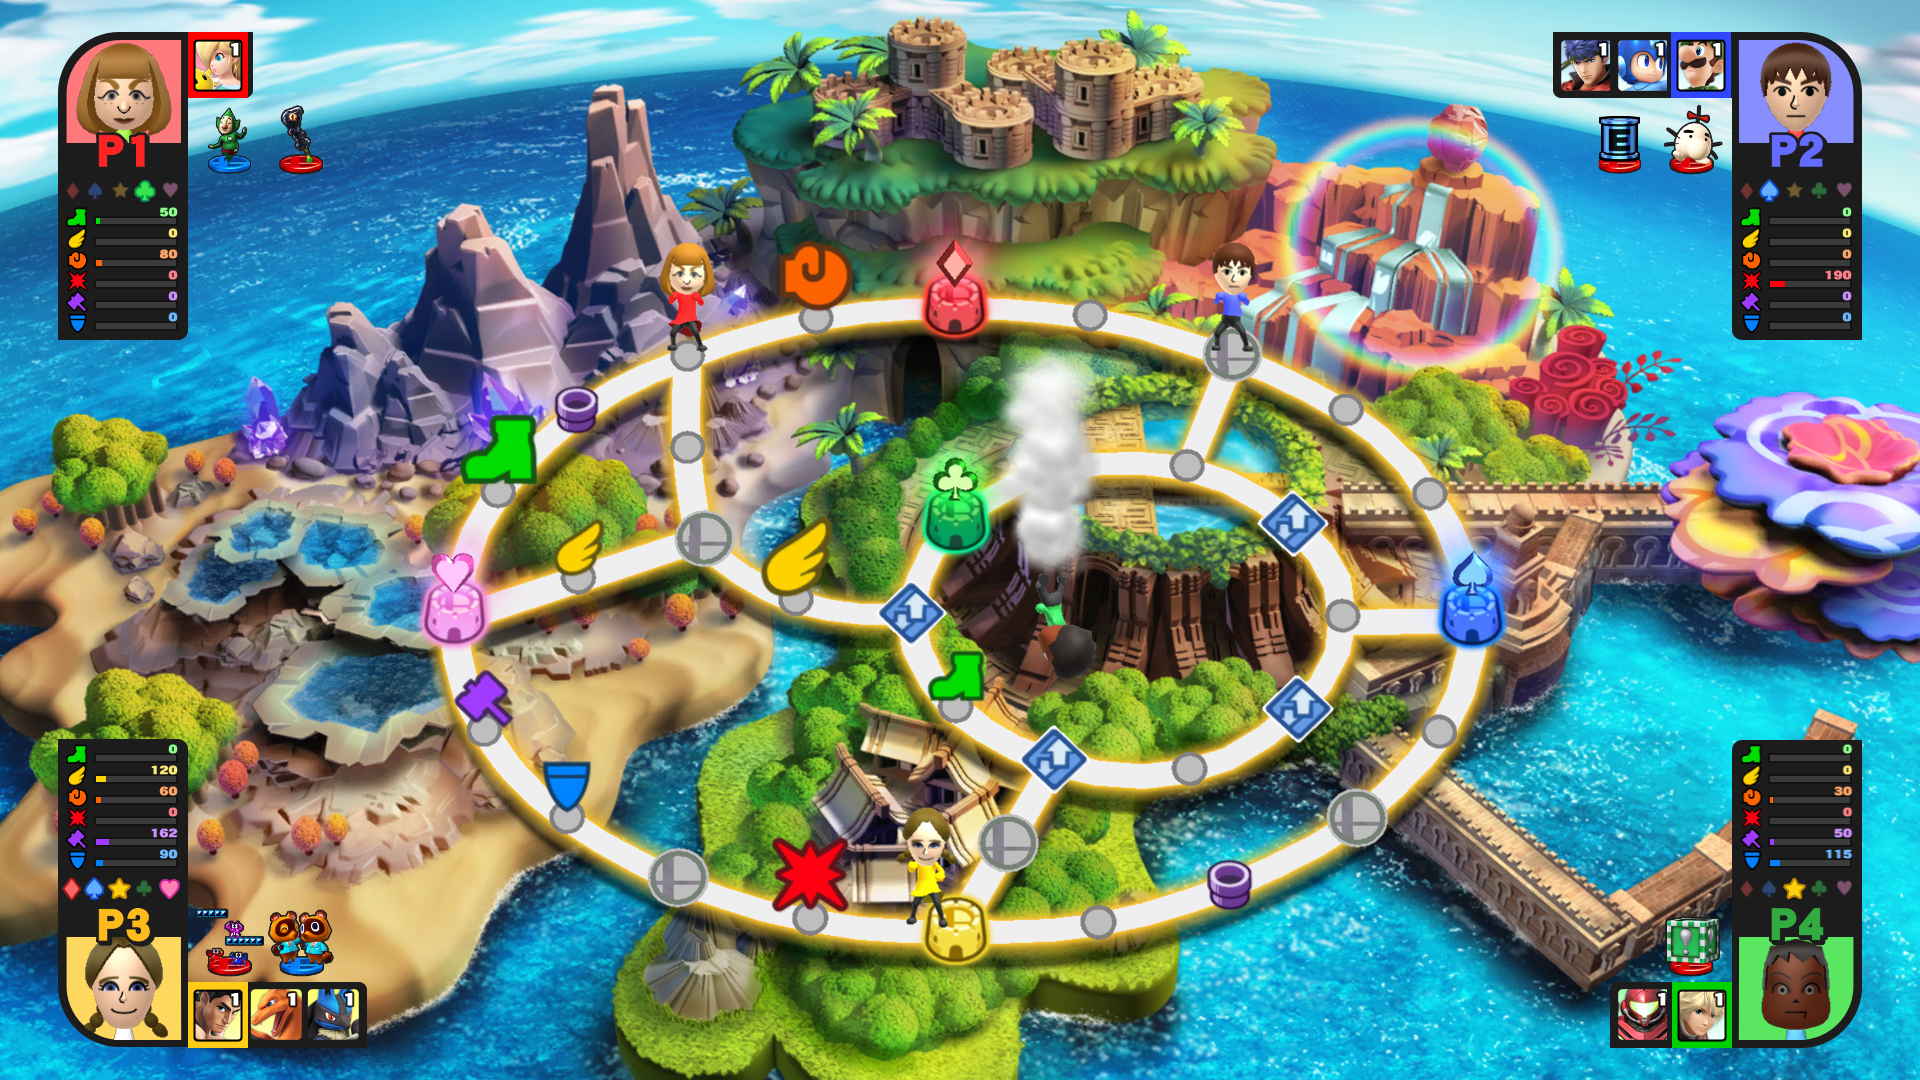 Smash Tour: The Mario Party we deserve, but maybe not the Mario Party we need.